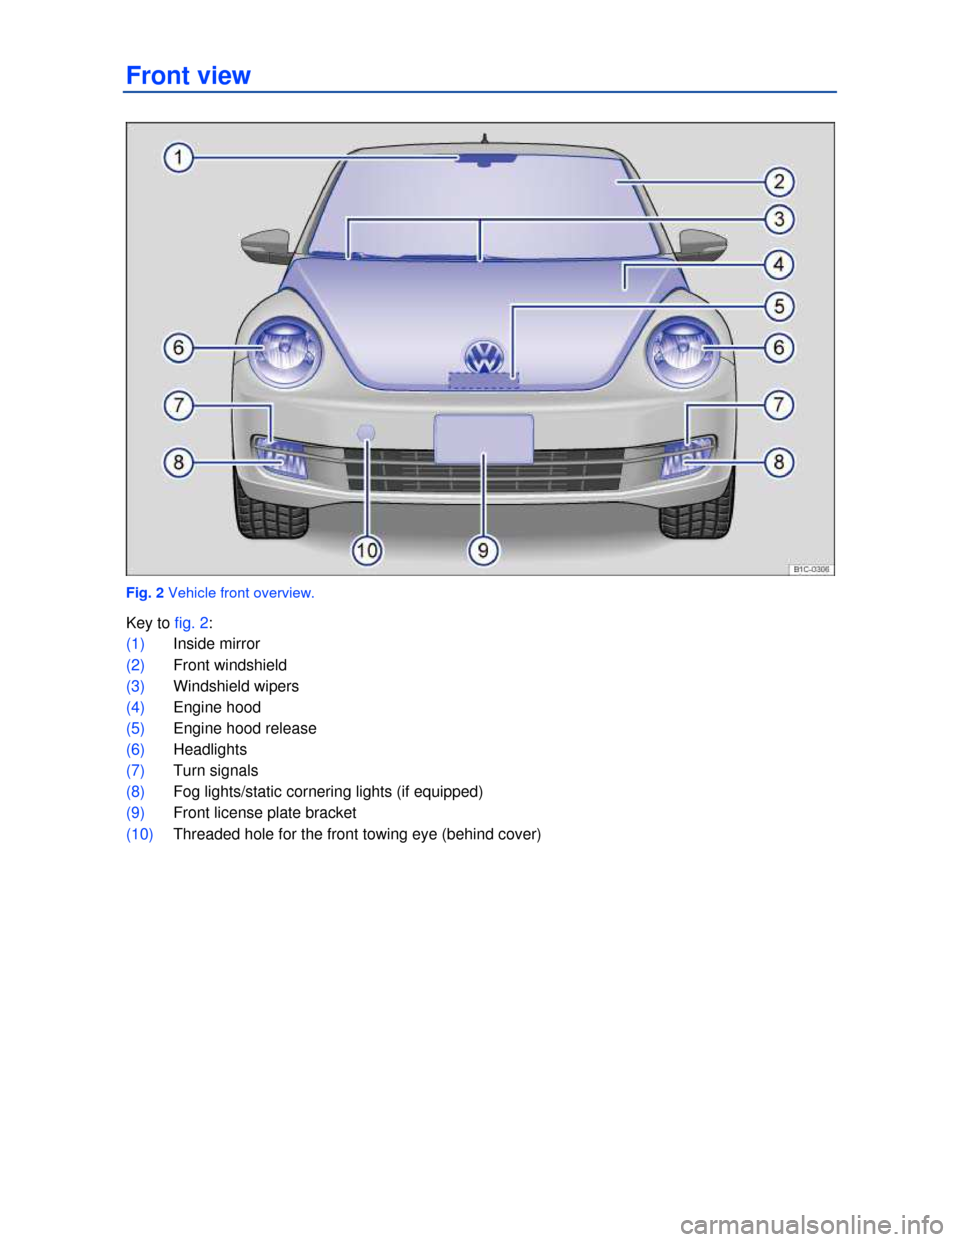 VOLKSWAGEN BEETLE 2013 3.G Owners Manual   Front view    Fig. 2 Vehicle front overview.  Key to fig. 2:  (1) Inside mirror   (2) Front windshield  (3) Windshield wipers   (4) Engine hood   (5) Engine hood release   (6) Headlights   (7) Turn